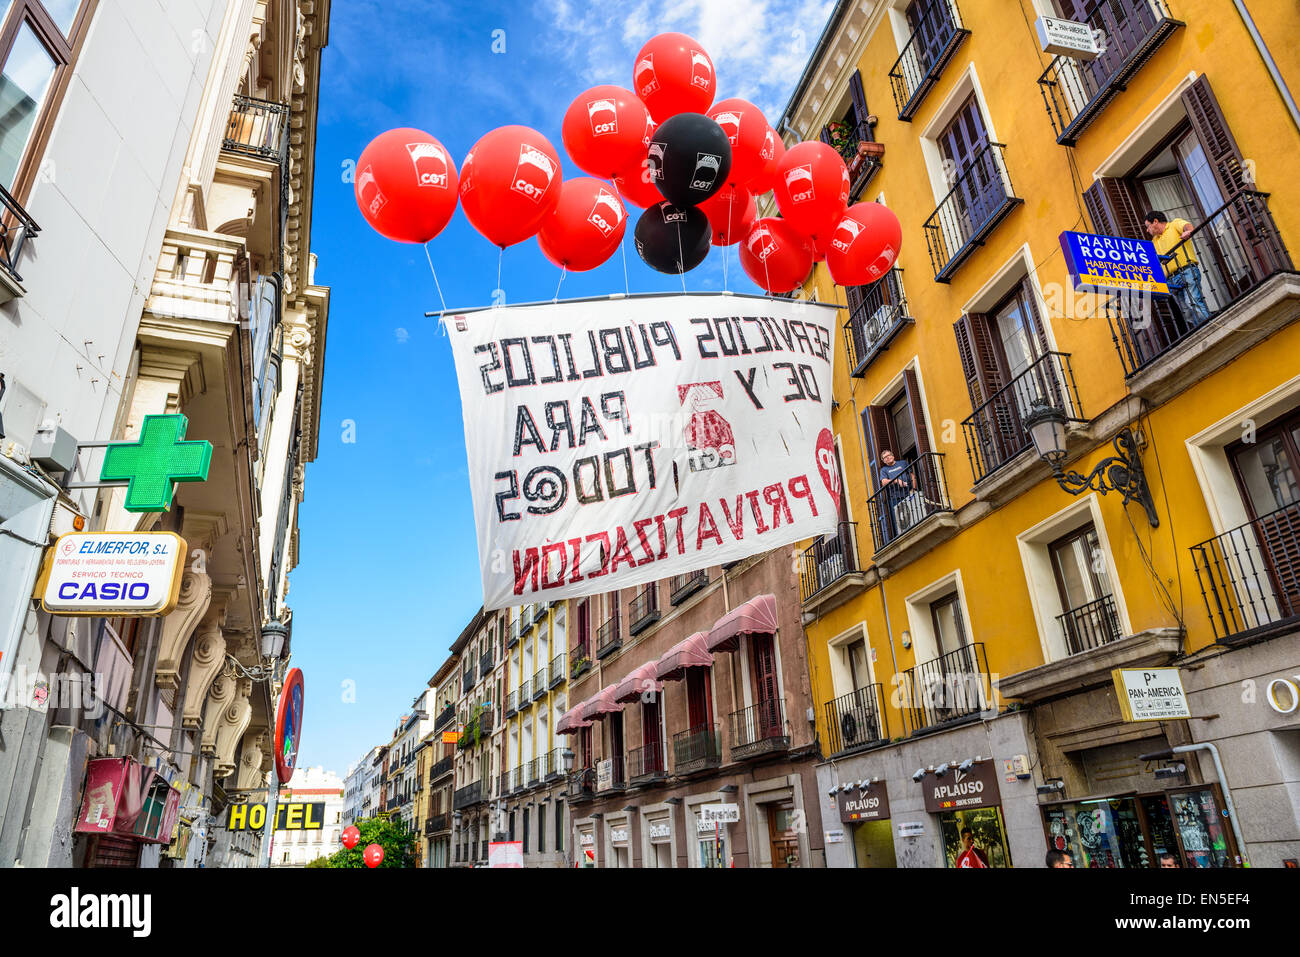 A banner carried by balloons protests the privatization of state-owned airport operator Aena Aeropuertos. - Stock Image